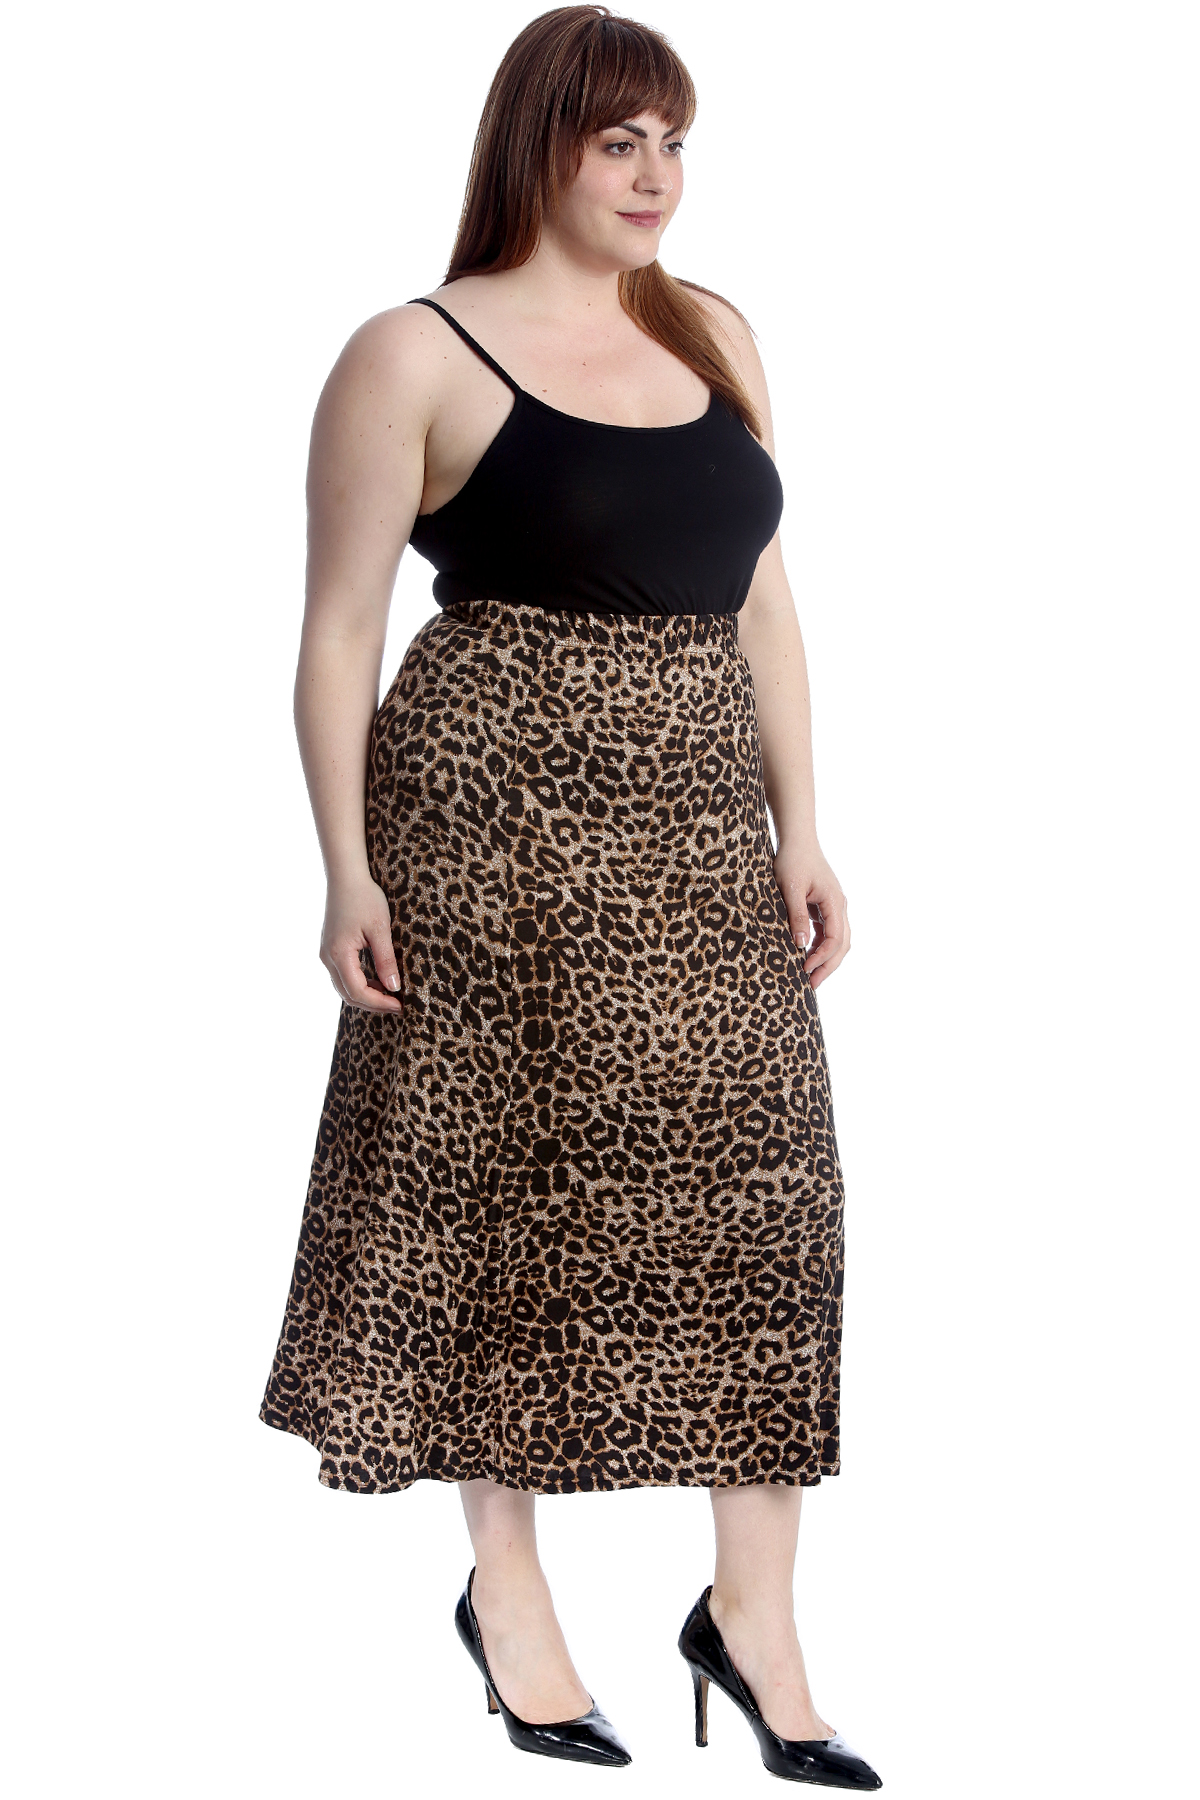 8c2e16120 New Womens Plus Size Skirt Ladies Animal Leopard Print Elastic Waist ...